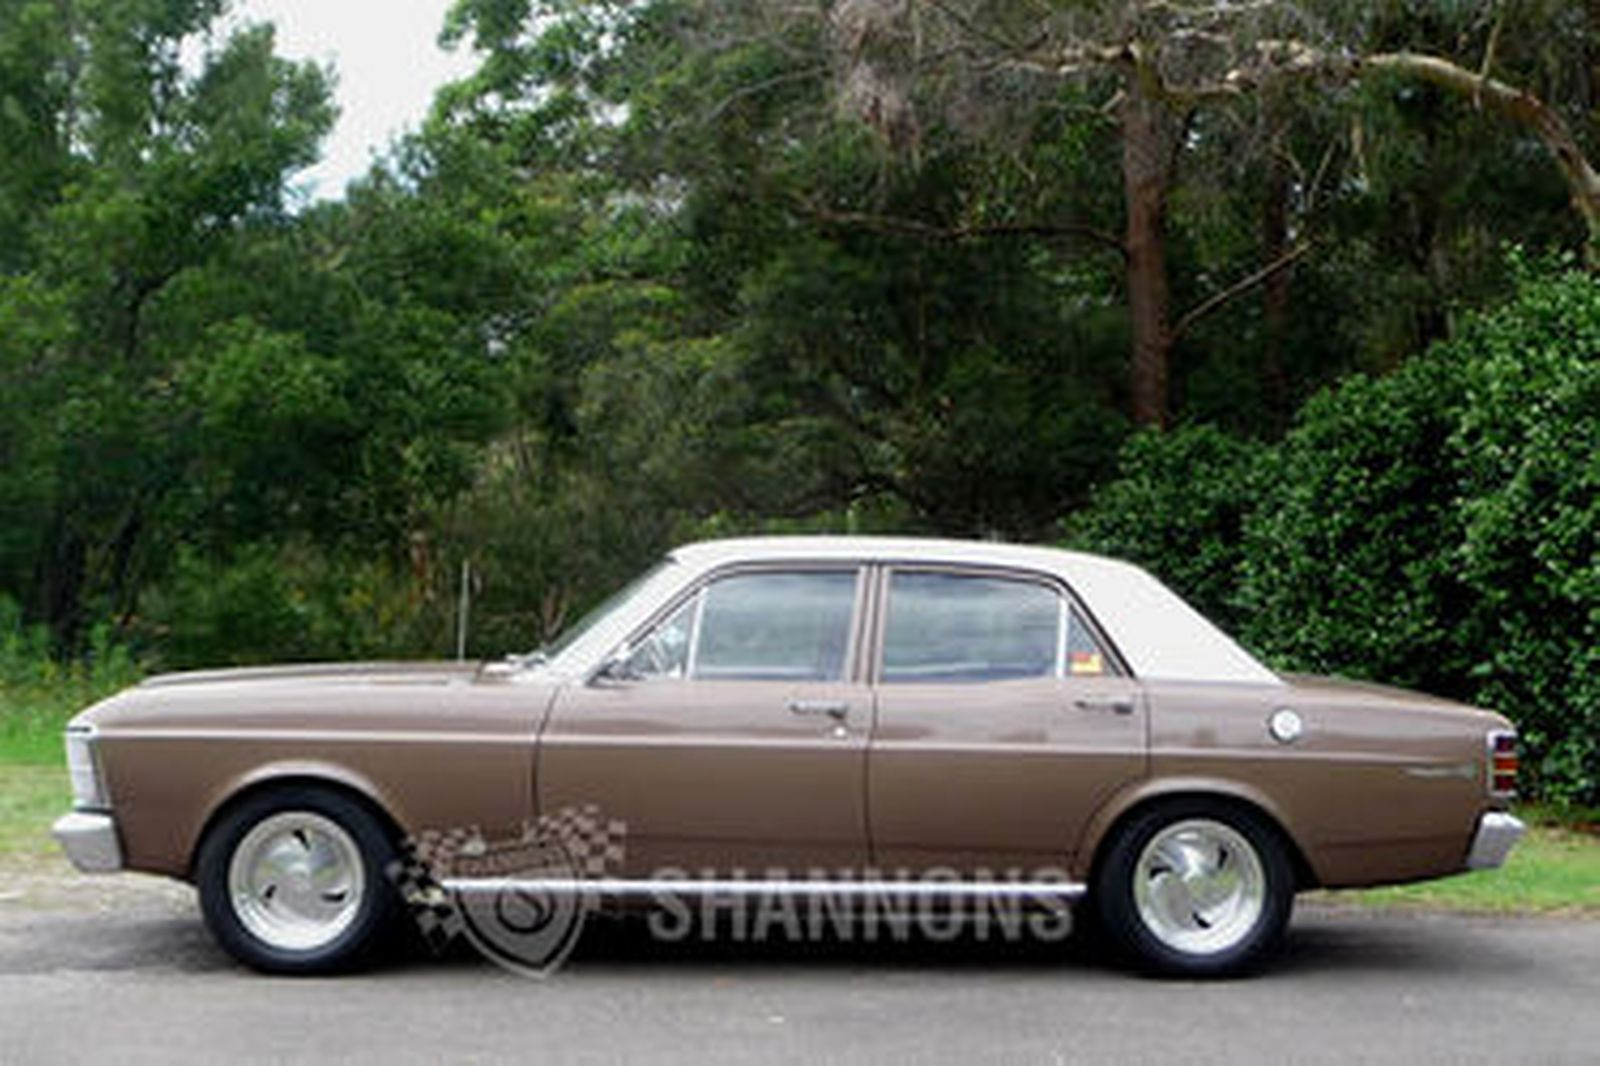 Ford Falcon Xw Sedan on Ford Falcon 6 Cylinder Engine